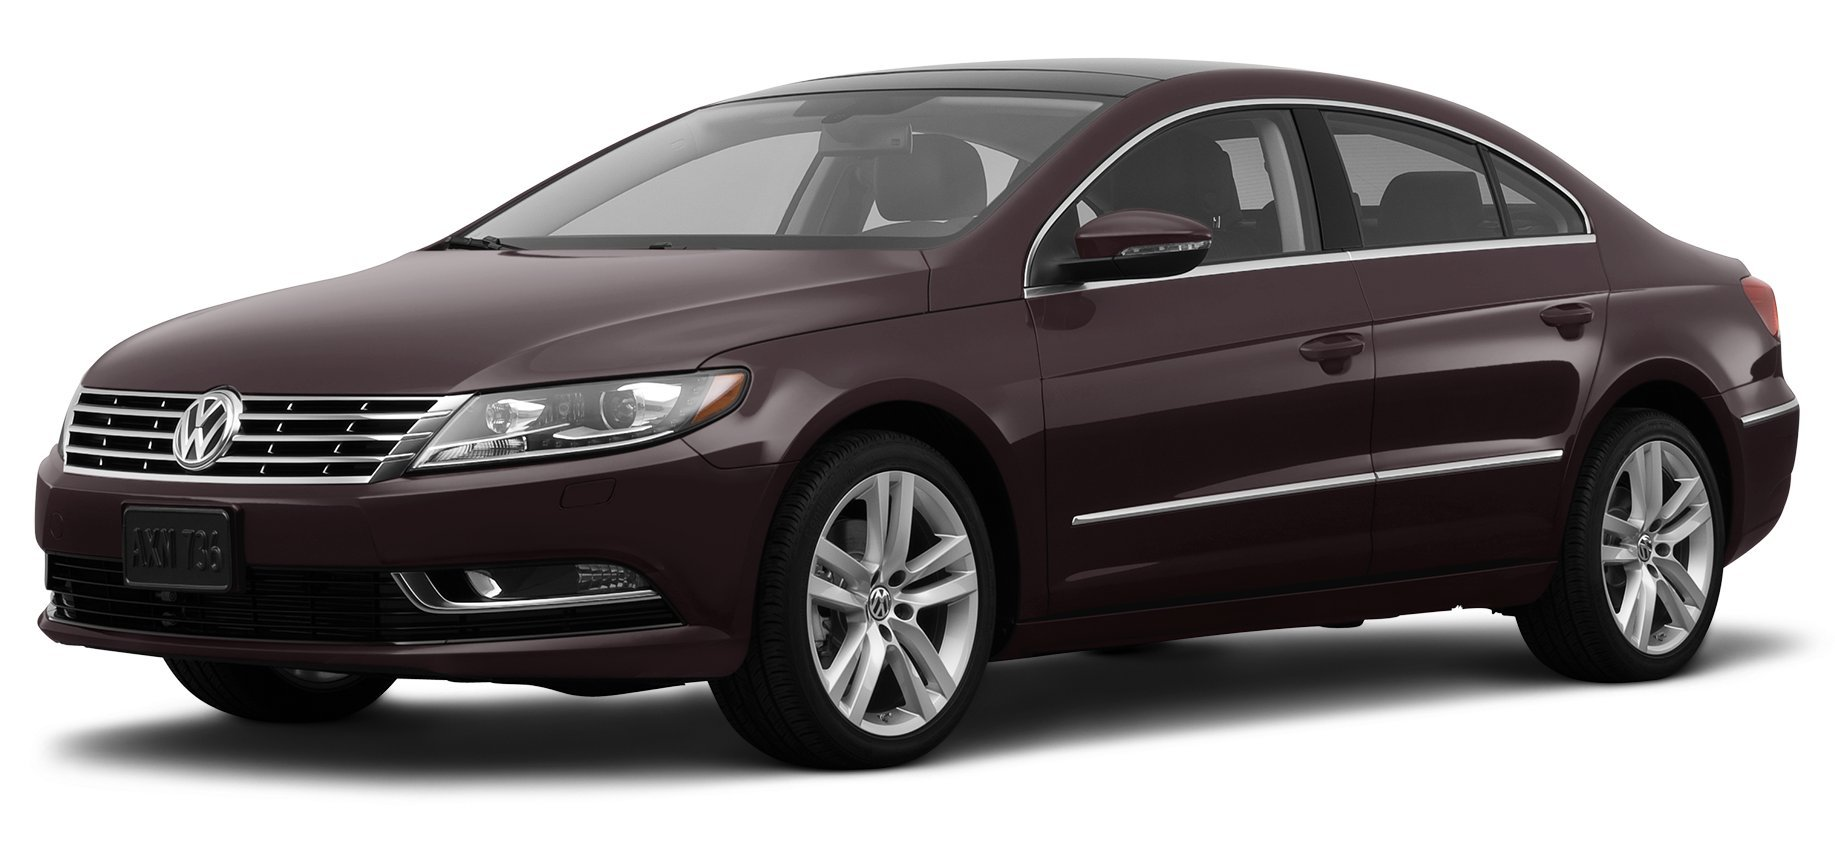 Amazoncom 2013 Volkswagen CC Reviews Images and Specs Vehicles